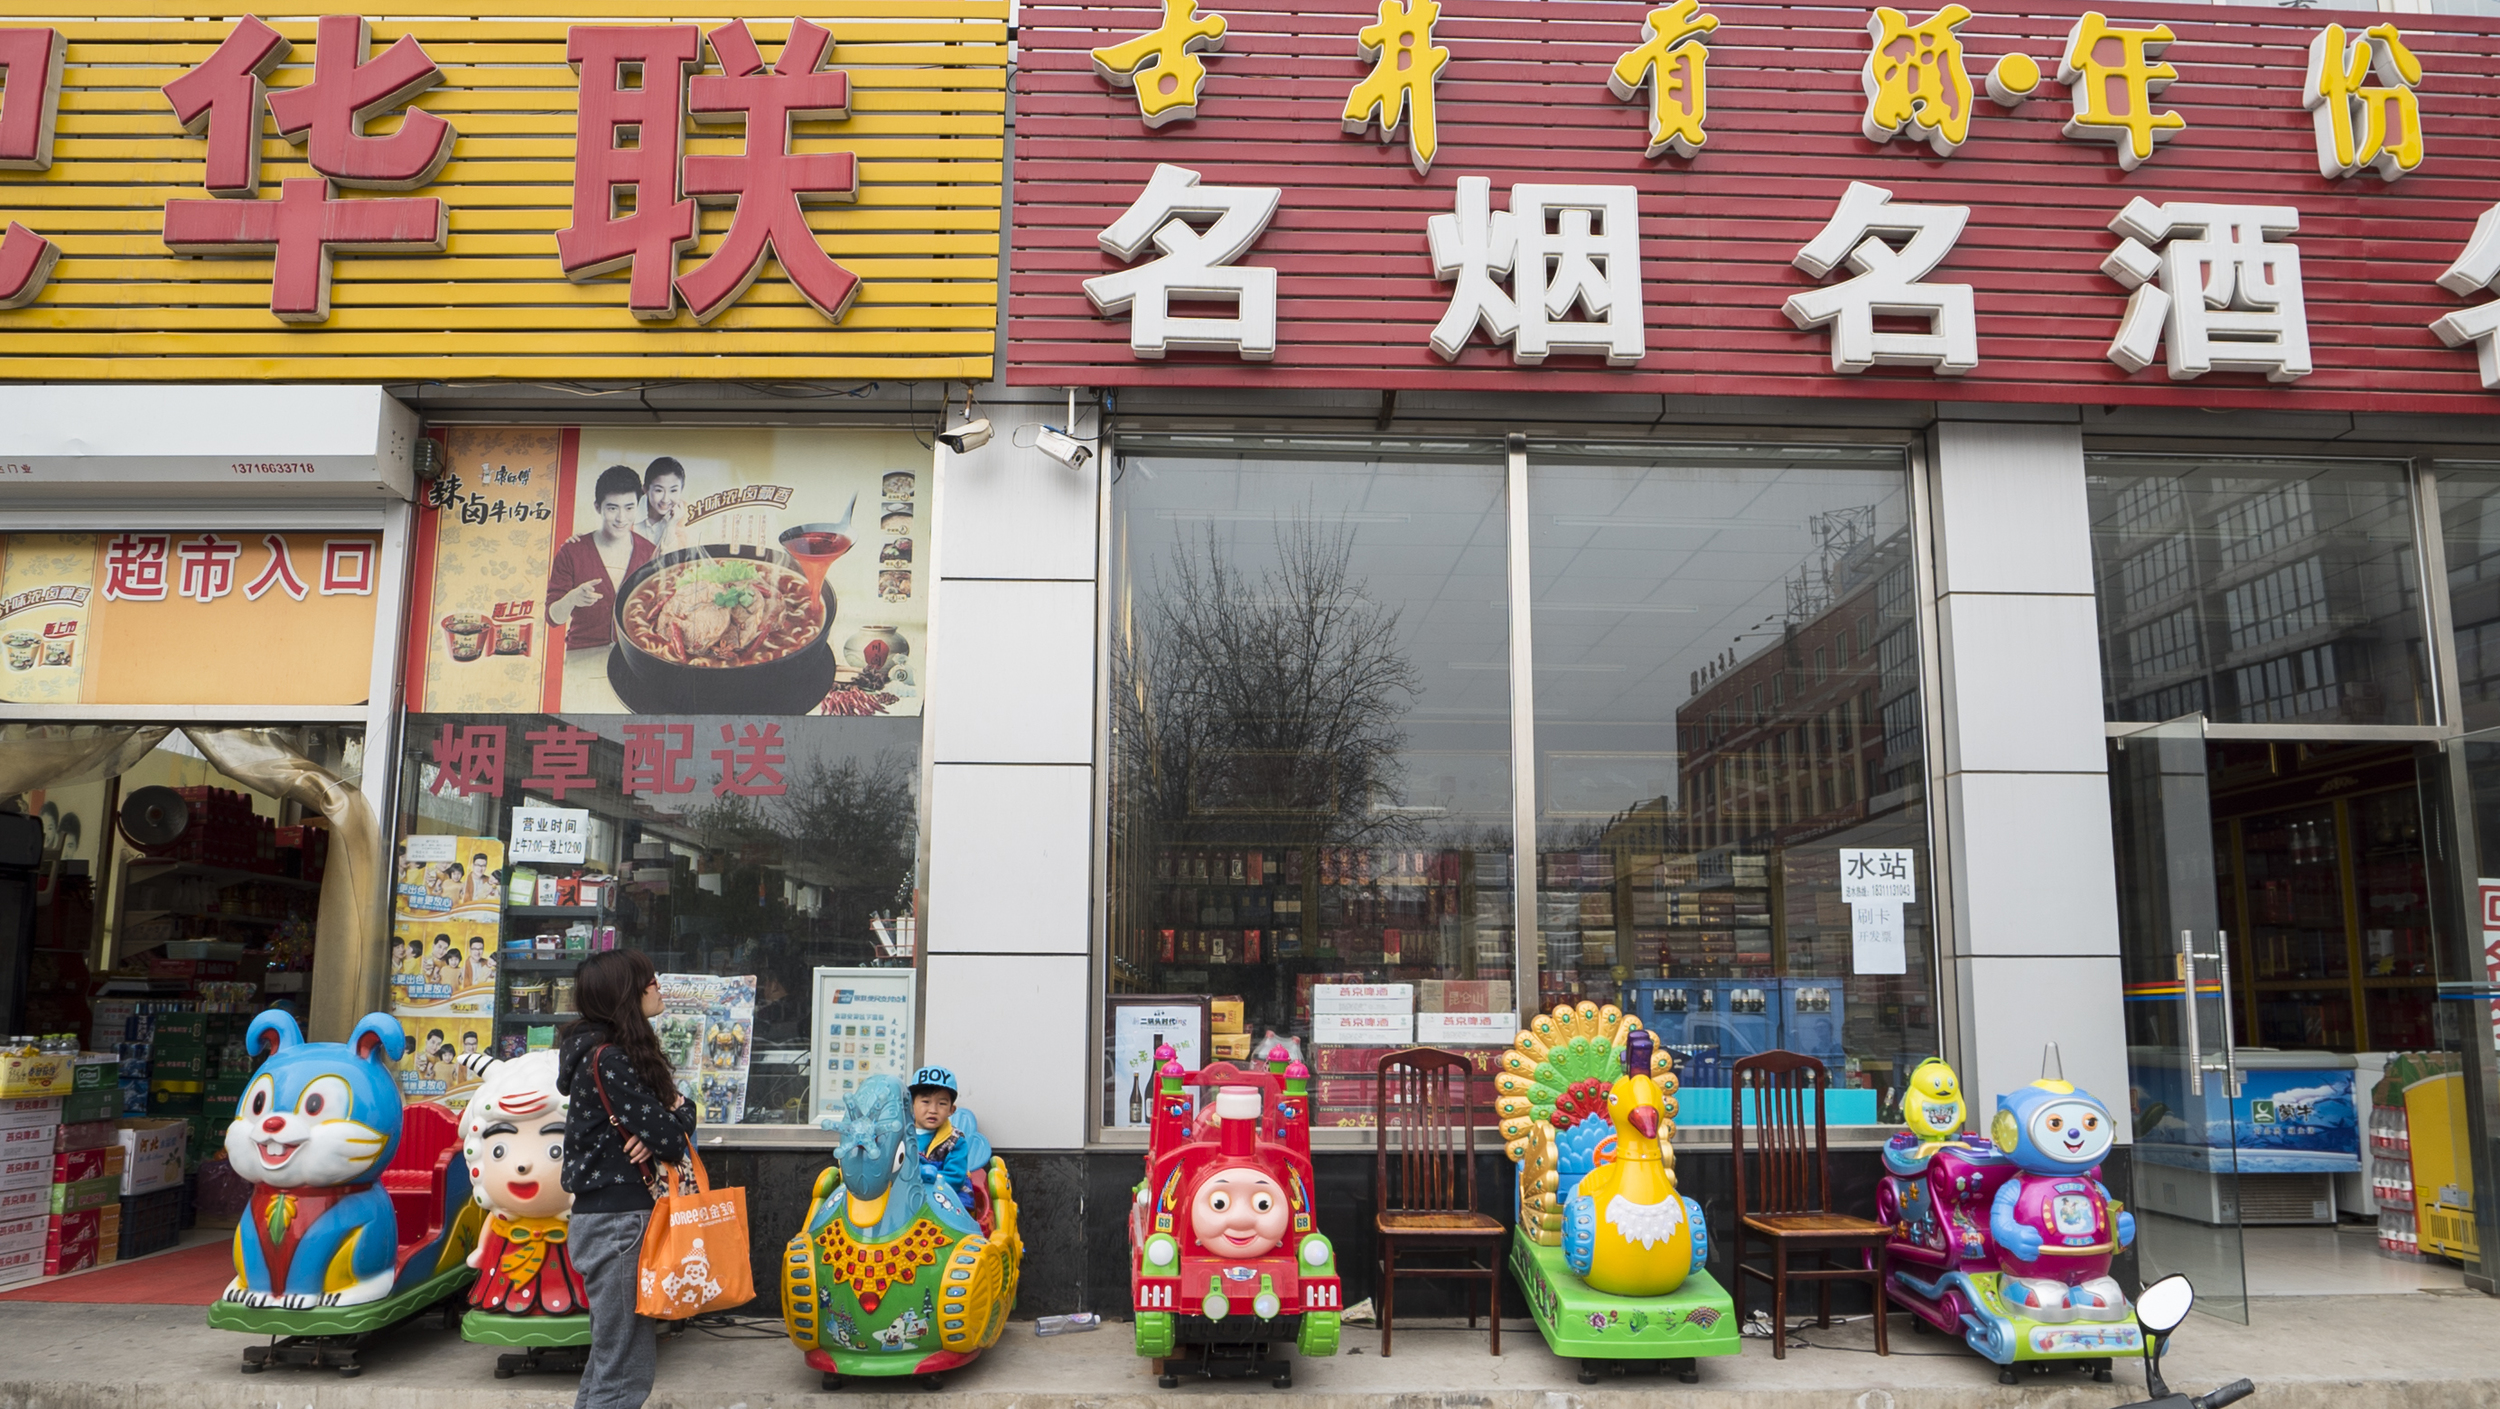 A young boy cautiously rides a knockoff cartoon character outside a supermarket in Changping district, Beijing. Photo: Abel Blanco.